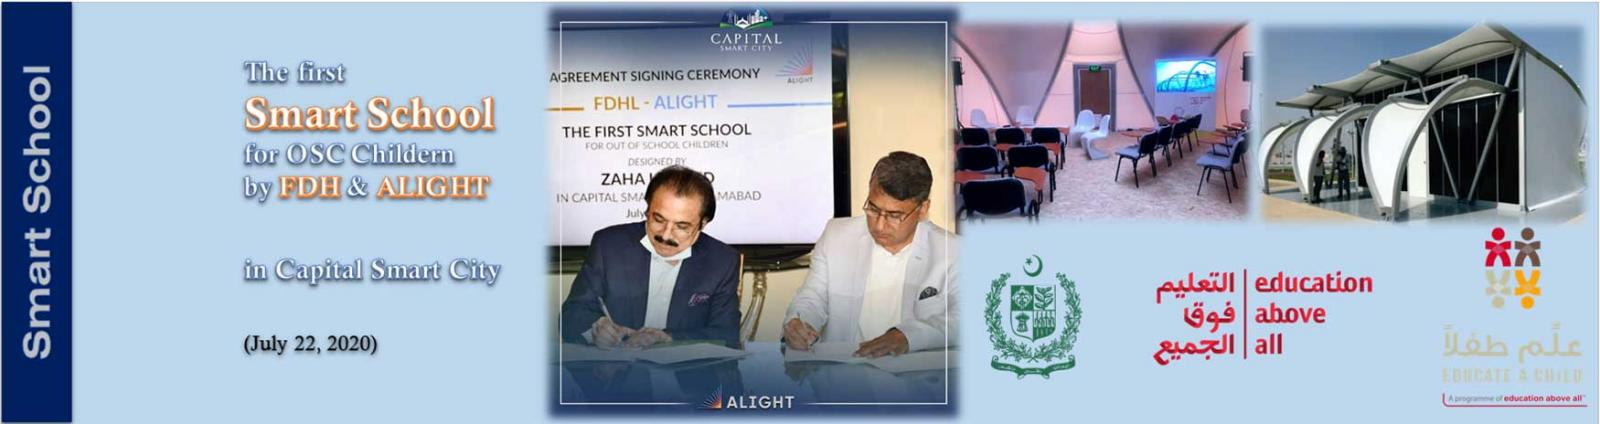 First Smart School for OSC Children by CSC & ALIGHT